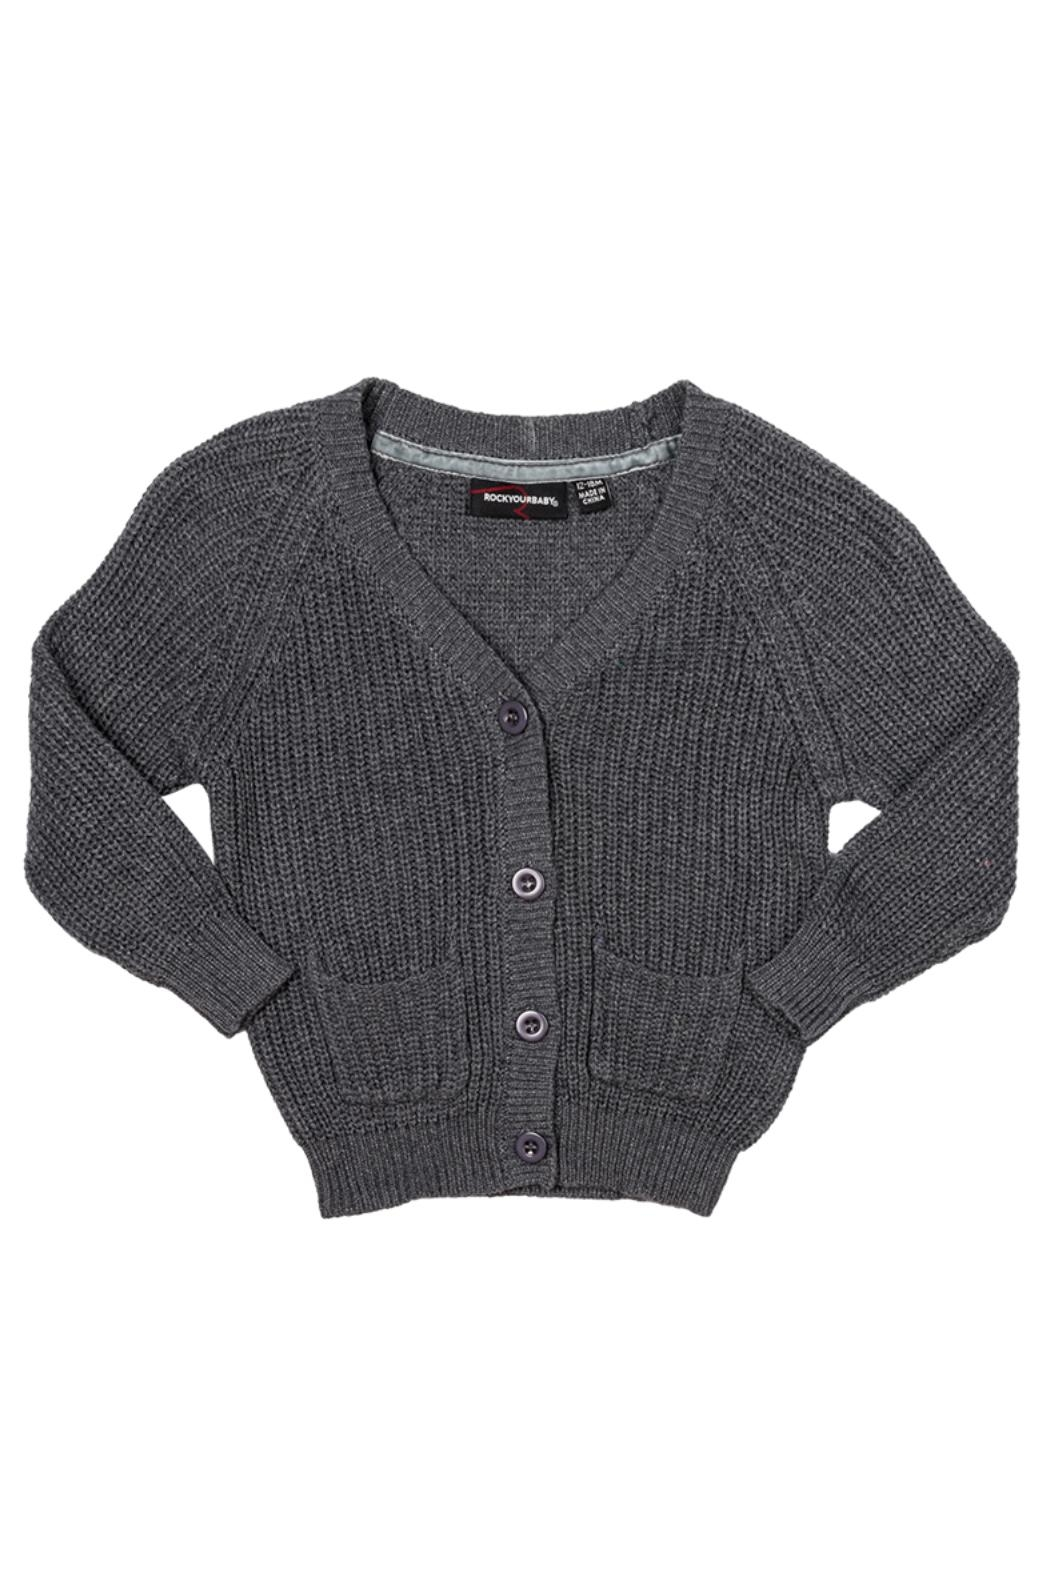 Rock Your Baby Grey Baby Cardigan - Main Image